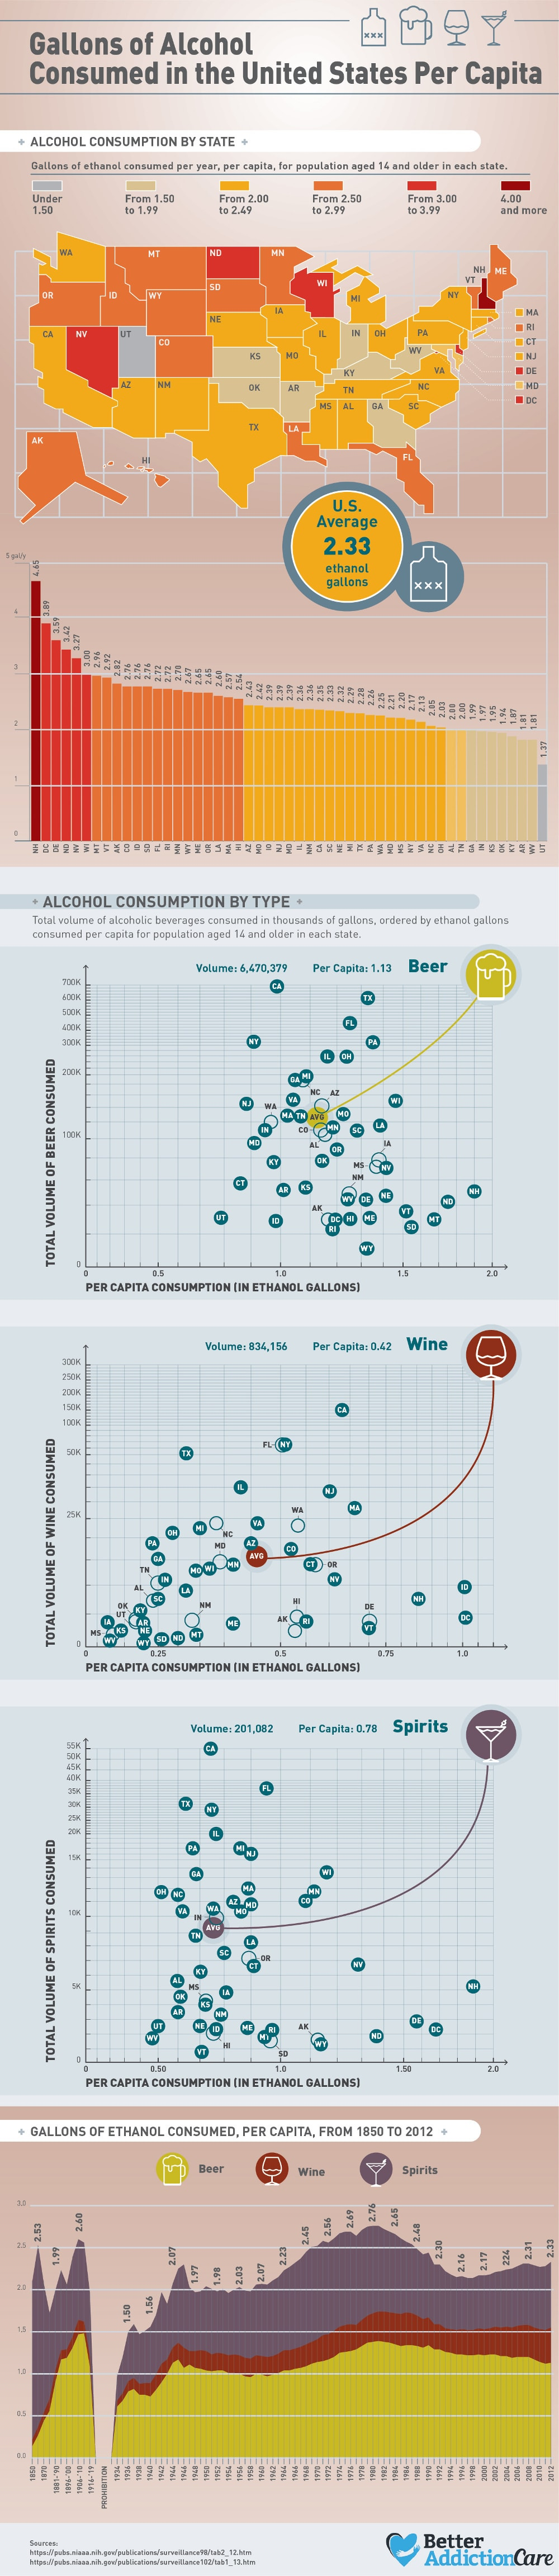 How Much Do Americans Drink? USA Alcohol Consumption Data - Infographic